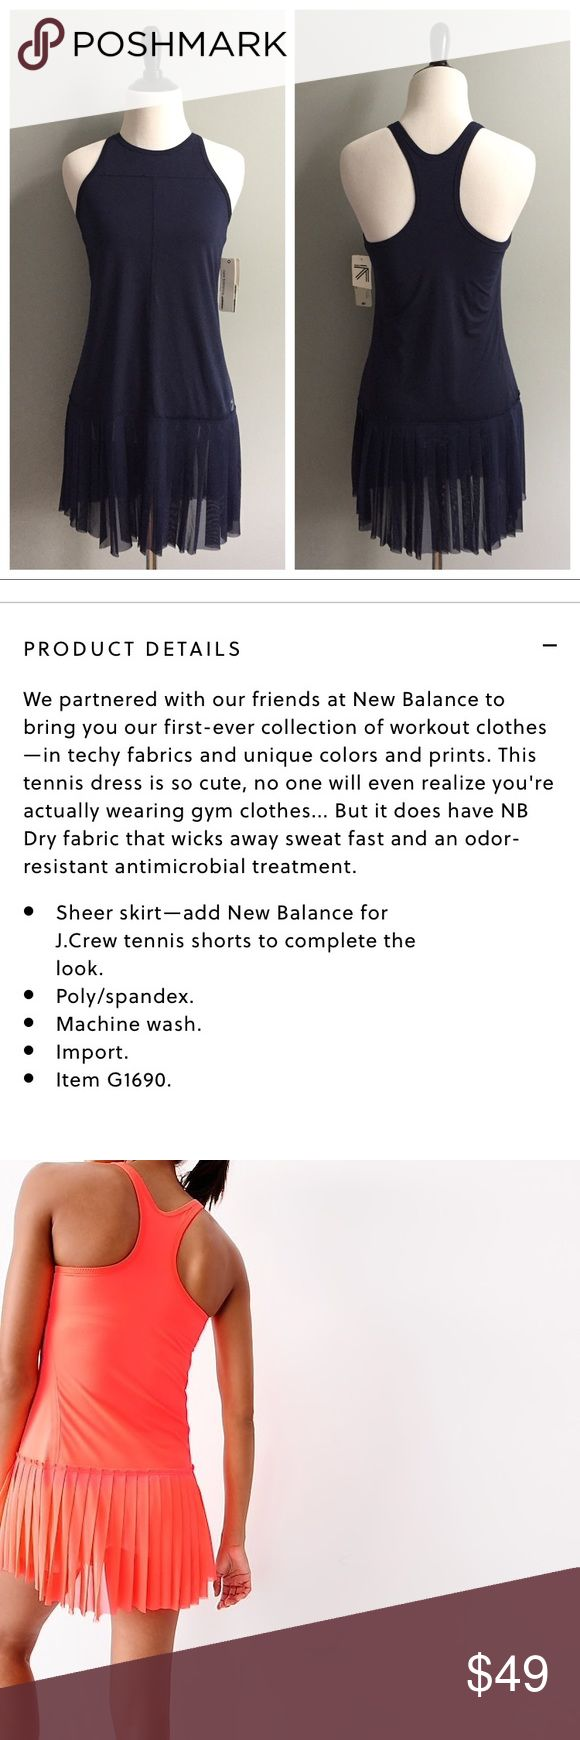 best tennis for me images on pinterest tennis tennis dress